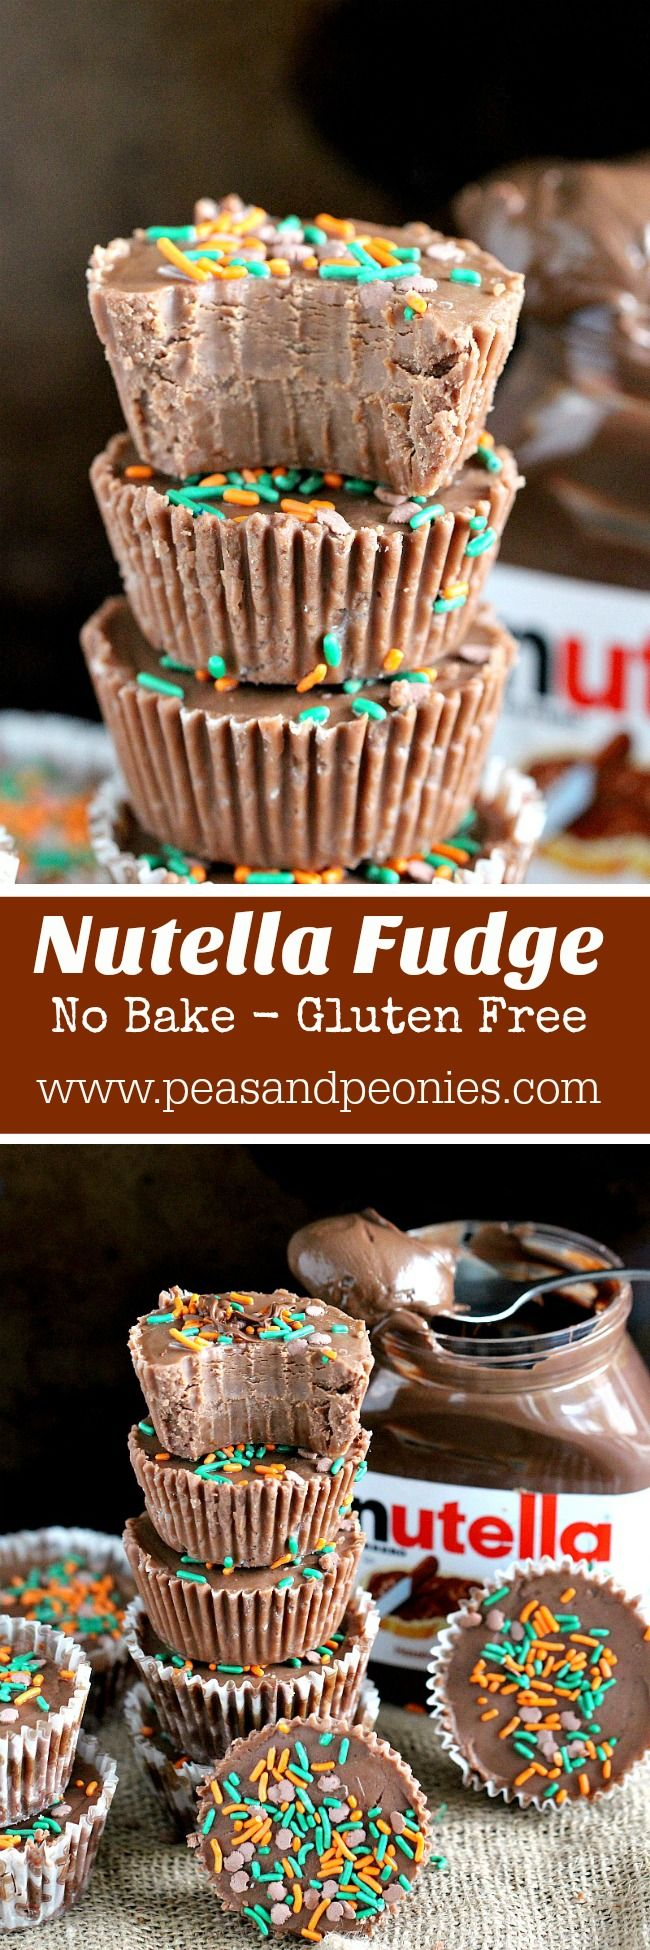 Quick and easy, No Bake Nutella Fudge is creamy, chocolaty, sweet and delicious, made in just minutes using your microwave.